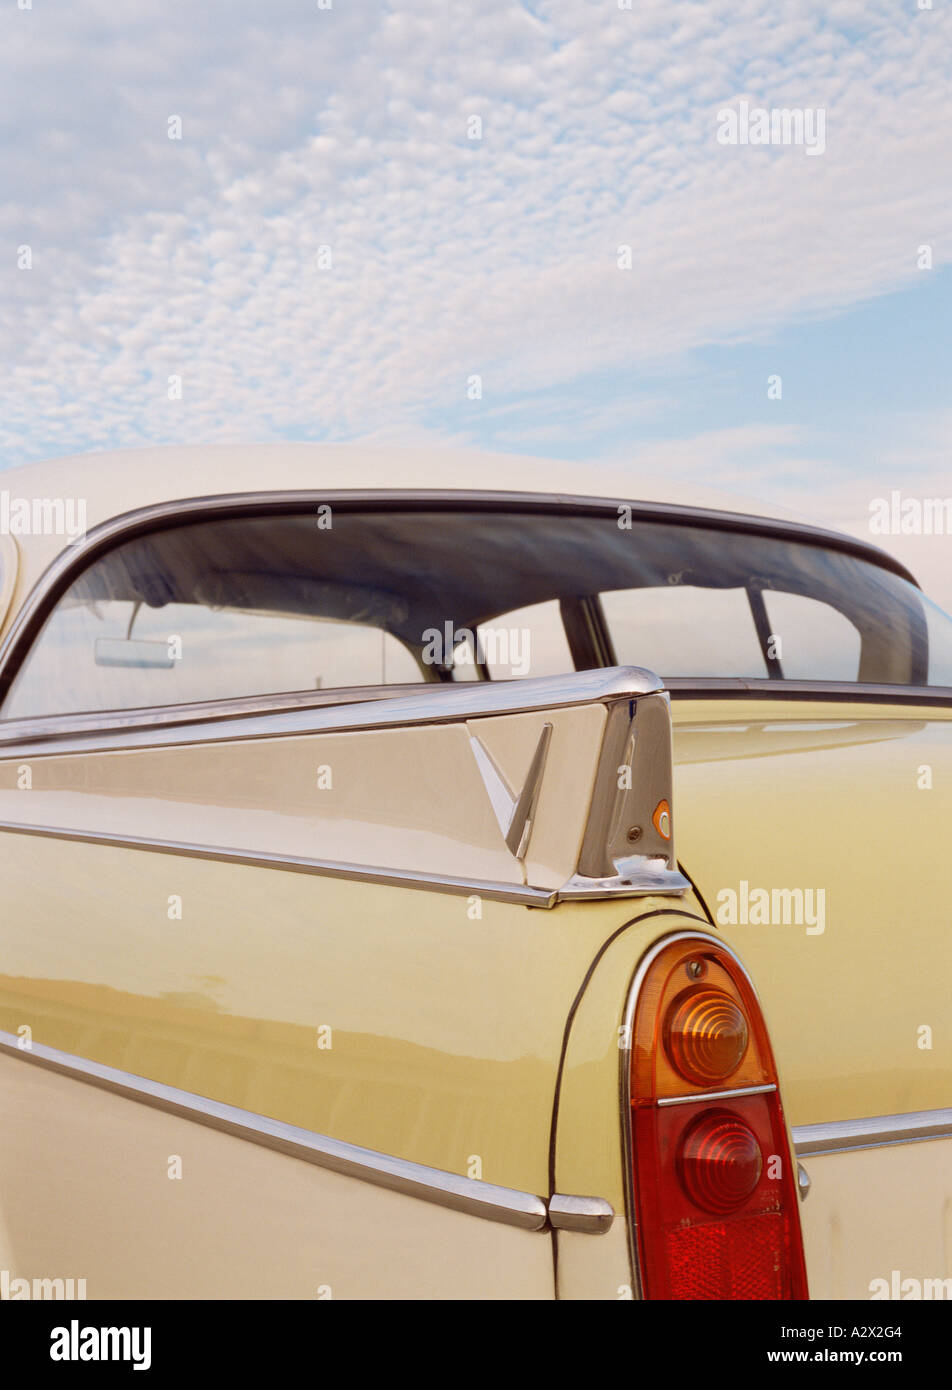 Transport. Road vehicles. Vintage. Classic Car. 1950s. Vauxhall Cresta. British. Close-up of rear wing. - Stock Image